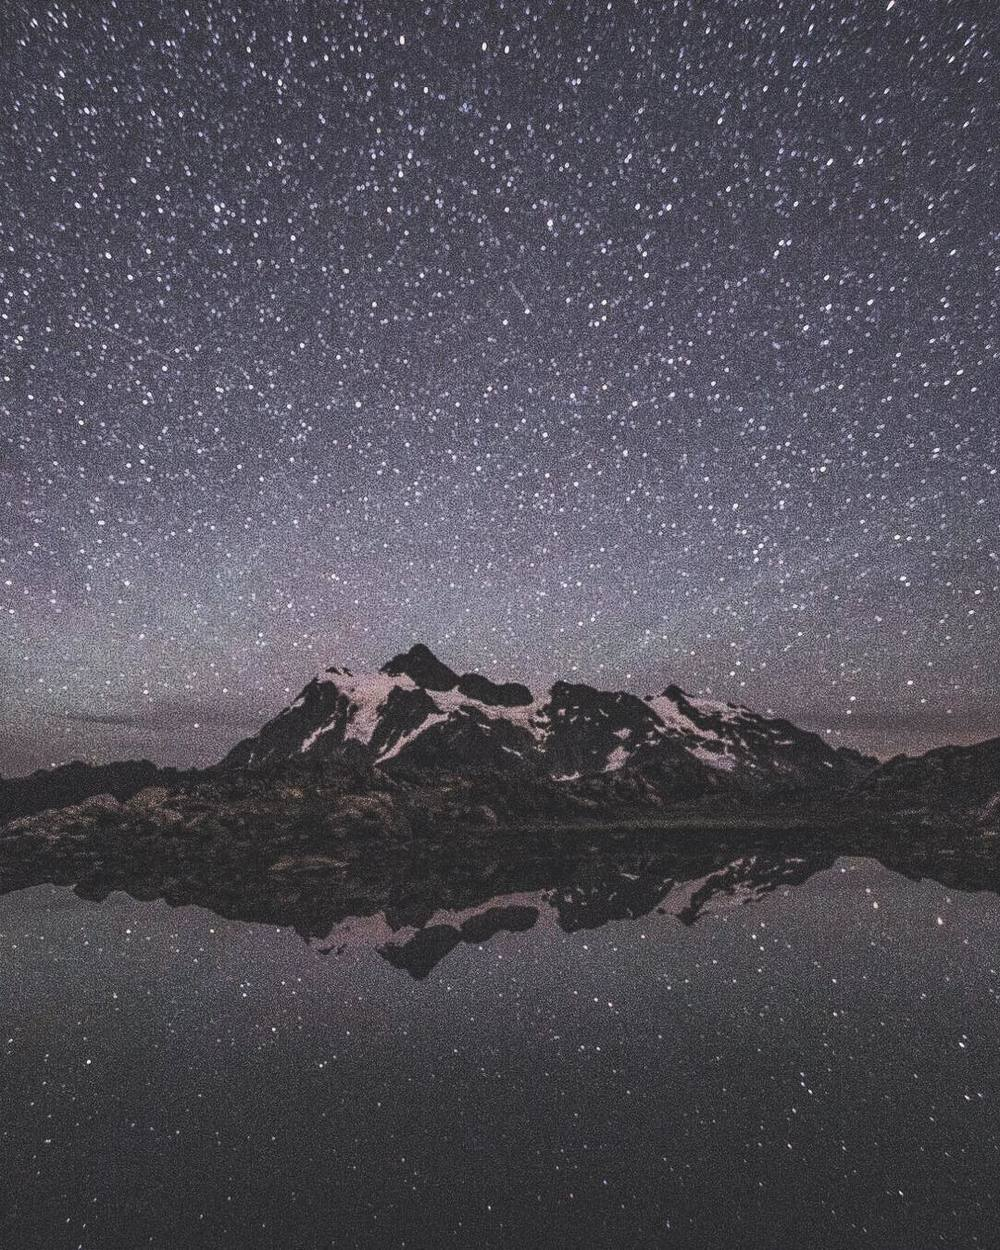 Sleepless_Nights_n__Alpine_Lakes_by_kylehouck.jpg